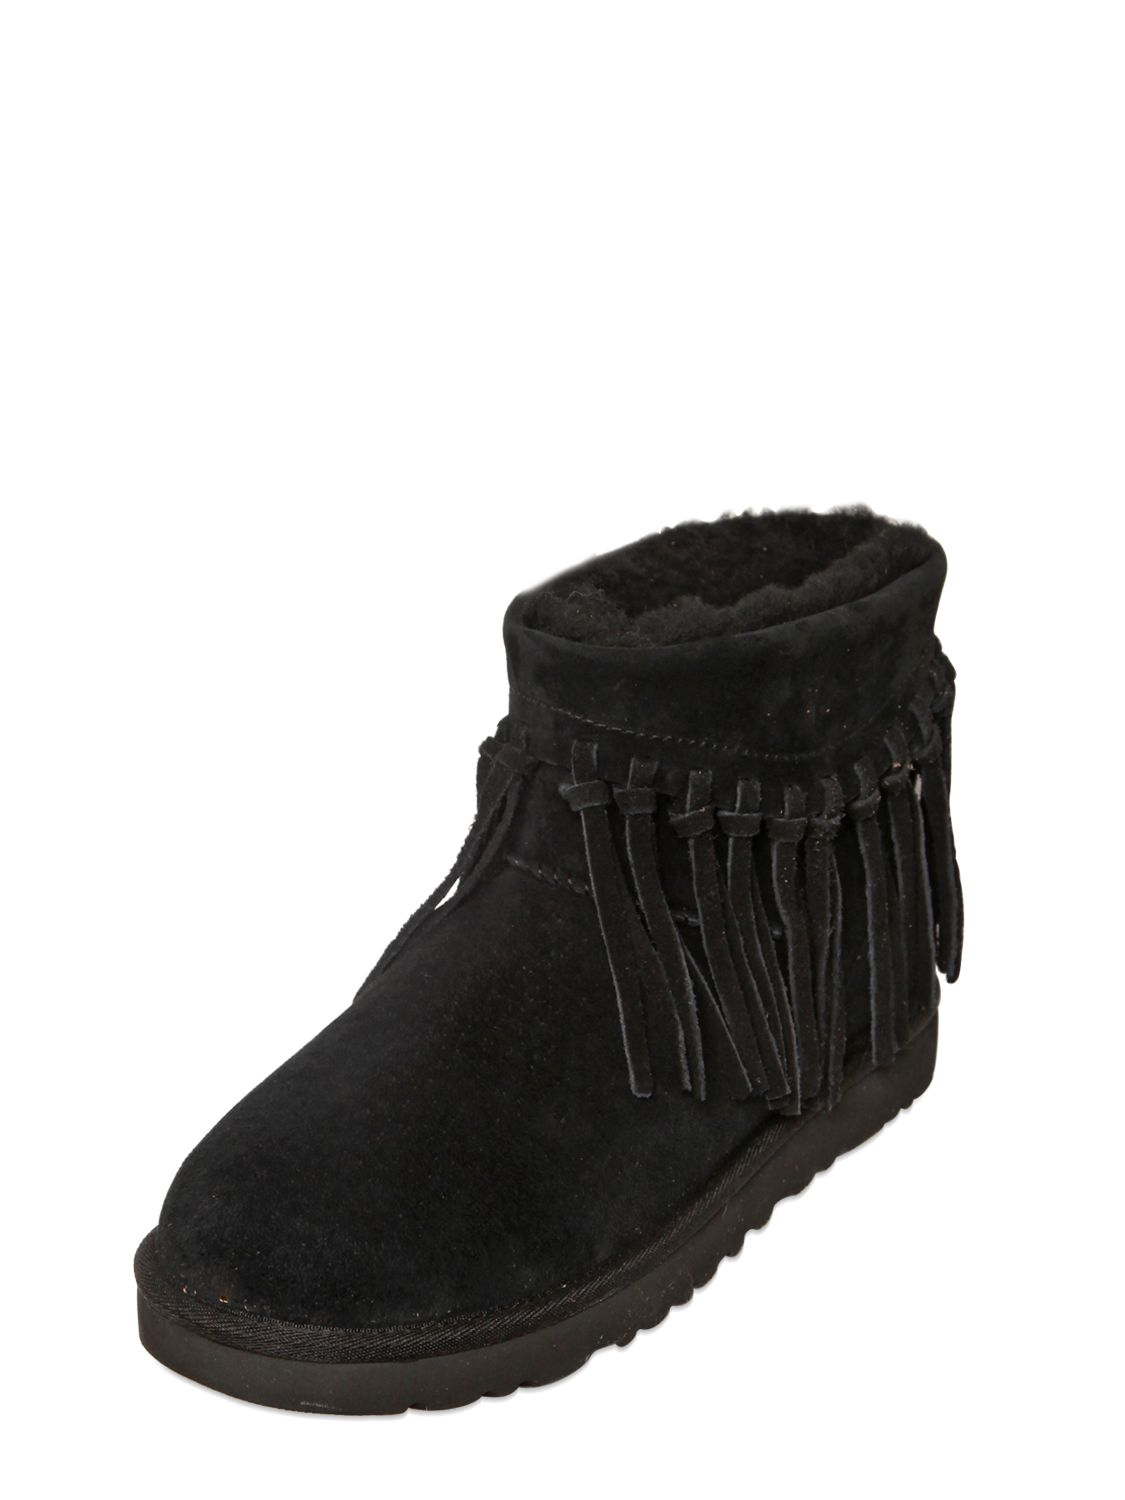 9d2dffbc3ad UGG Black Winona Fringed Shearling Ankle Boots